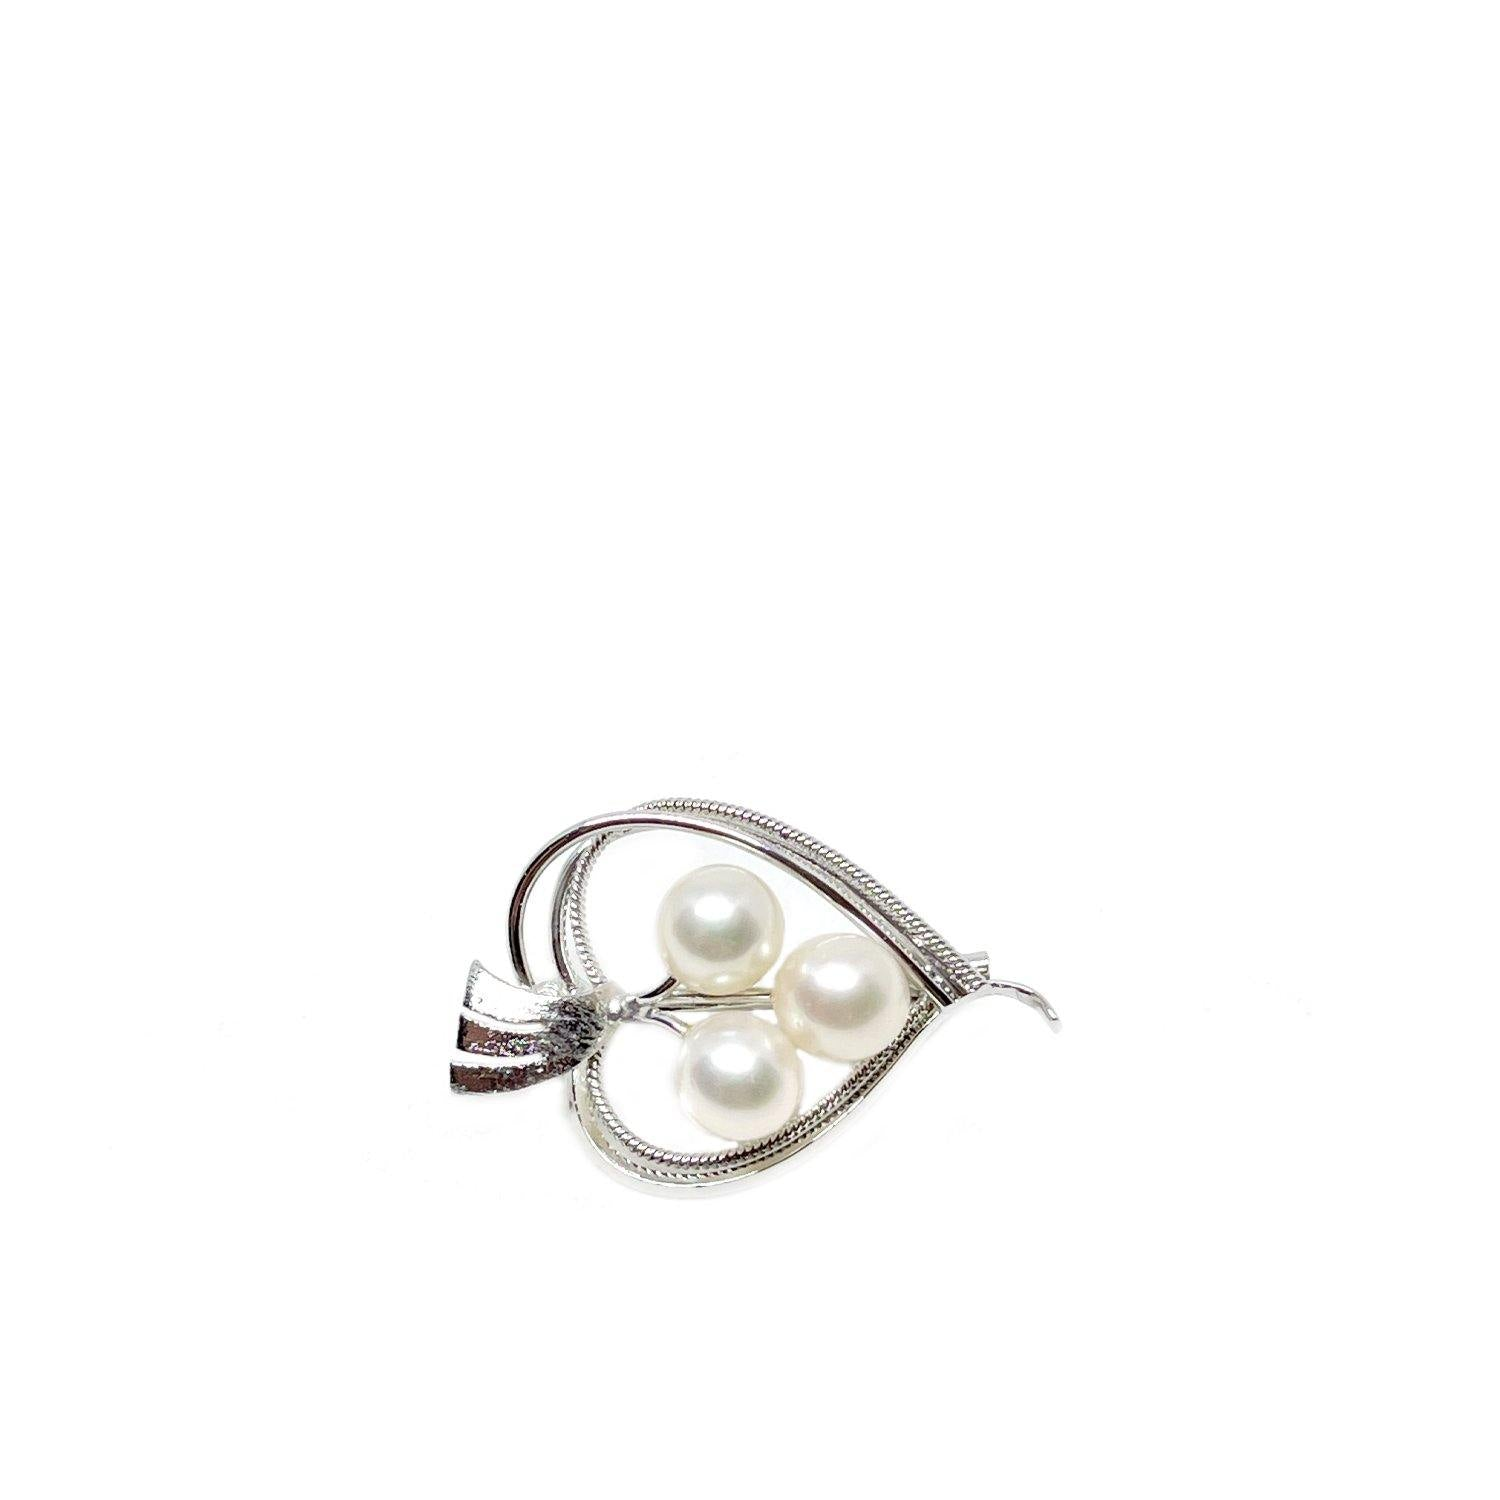 Petite Heart Japanese Saltwater Akoya Cultured Pearl Brooch- Sterling Silver